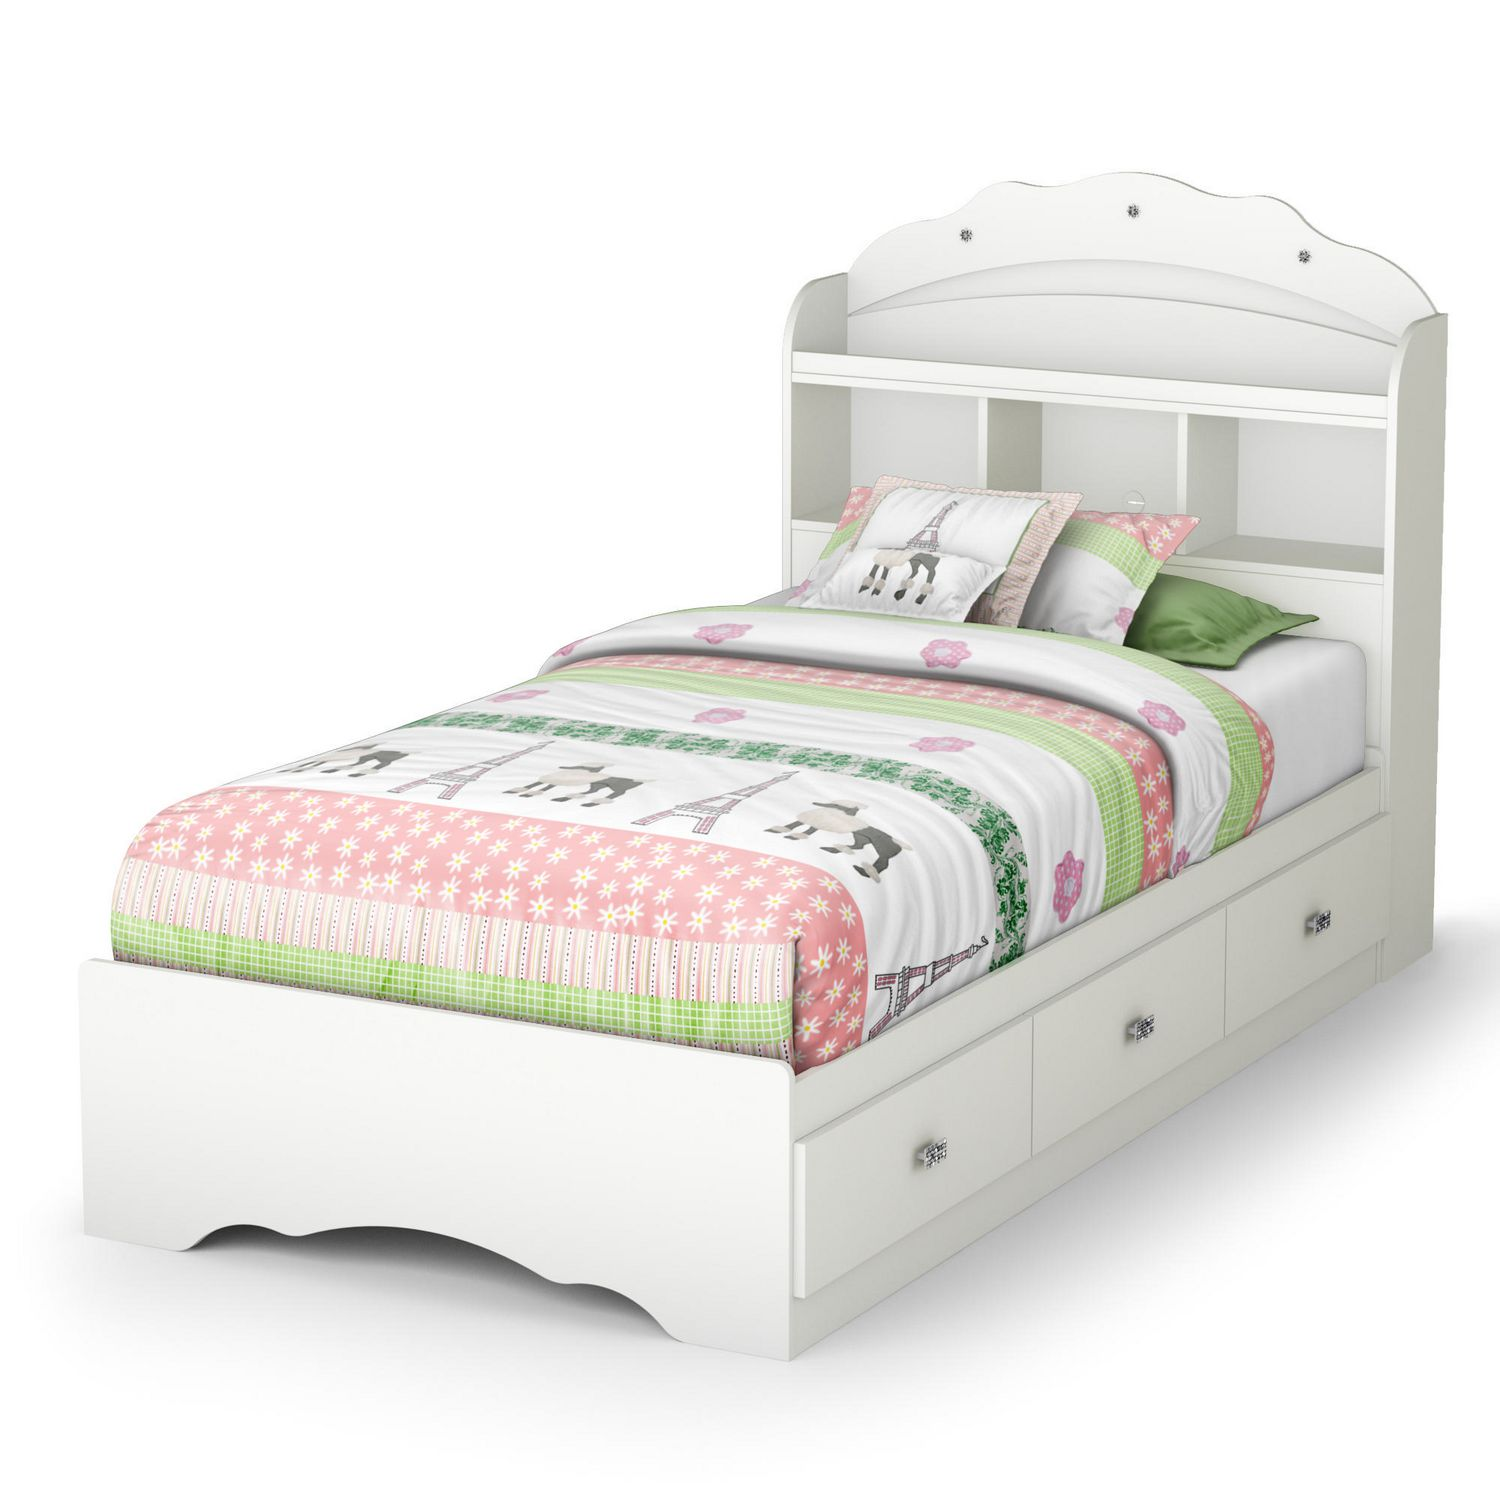 South Shore Tiara Twin Storage Bed With Drawers And Bookcase Headboard 39 Inch Set Walmart Canada